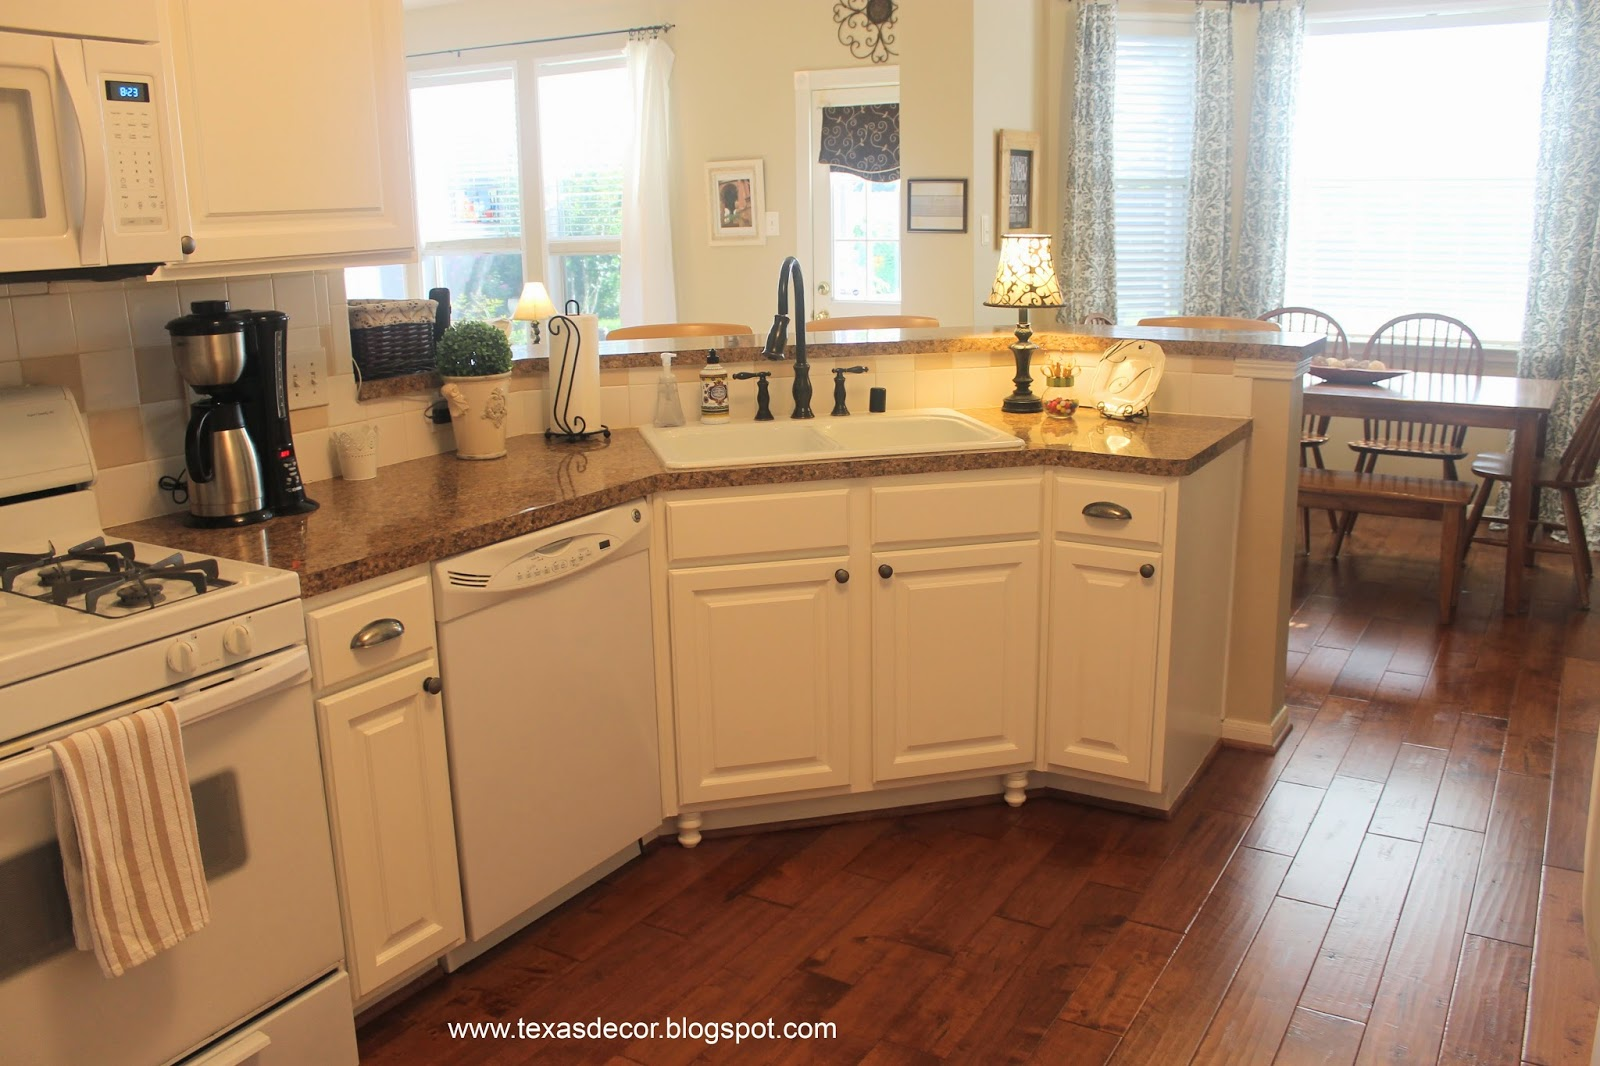 White Kitchen Cabinets with Bisque Appliances